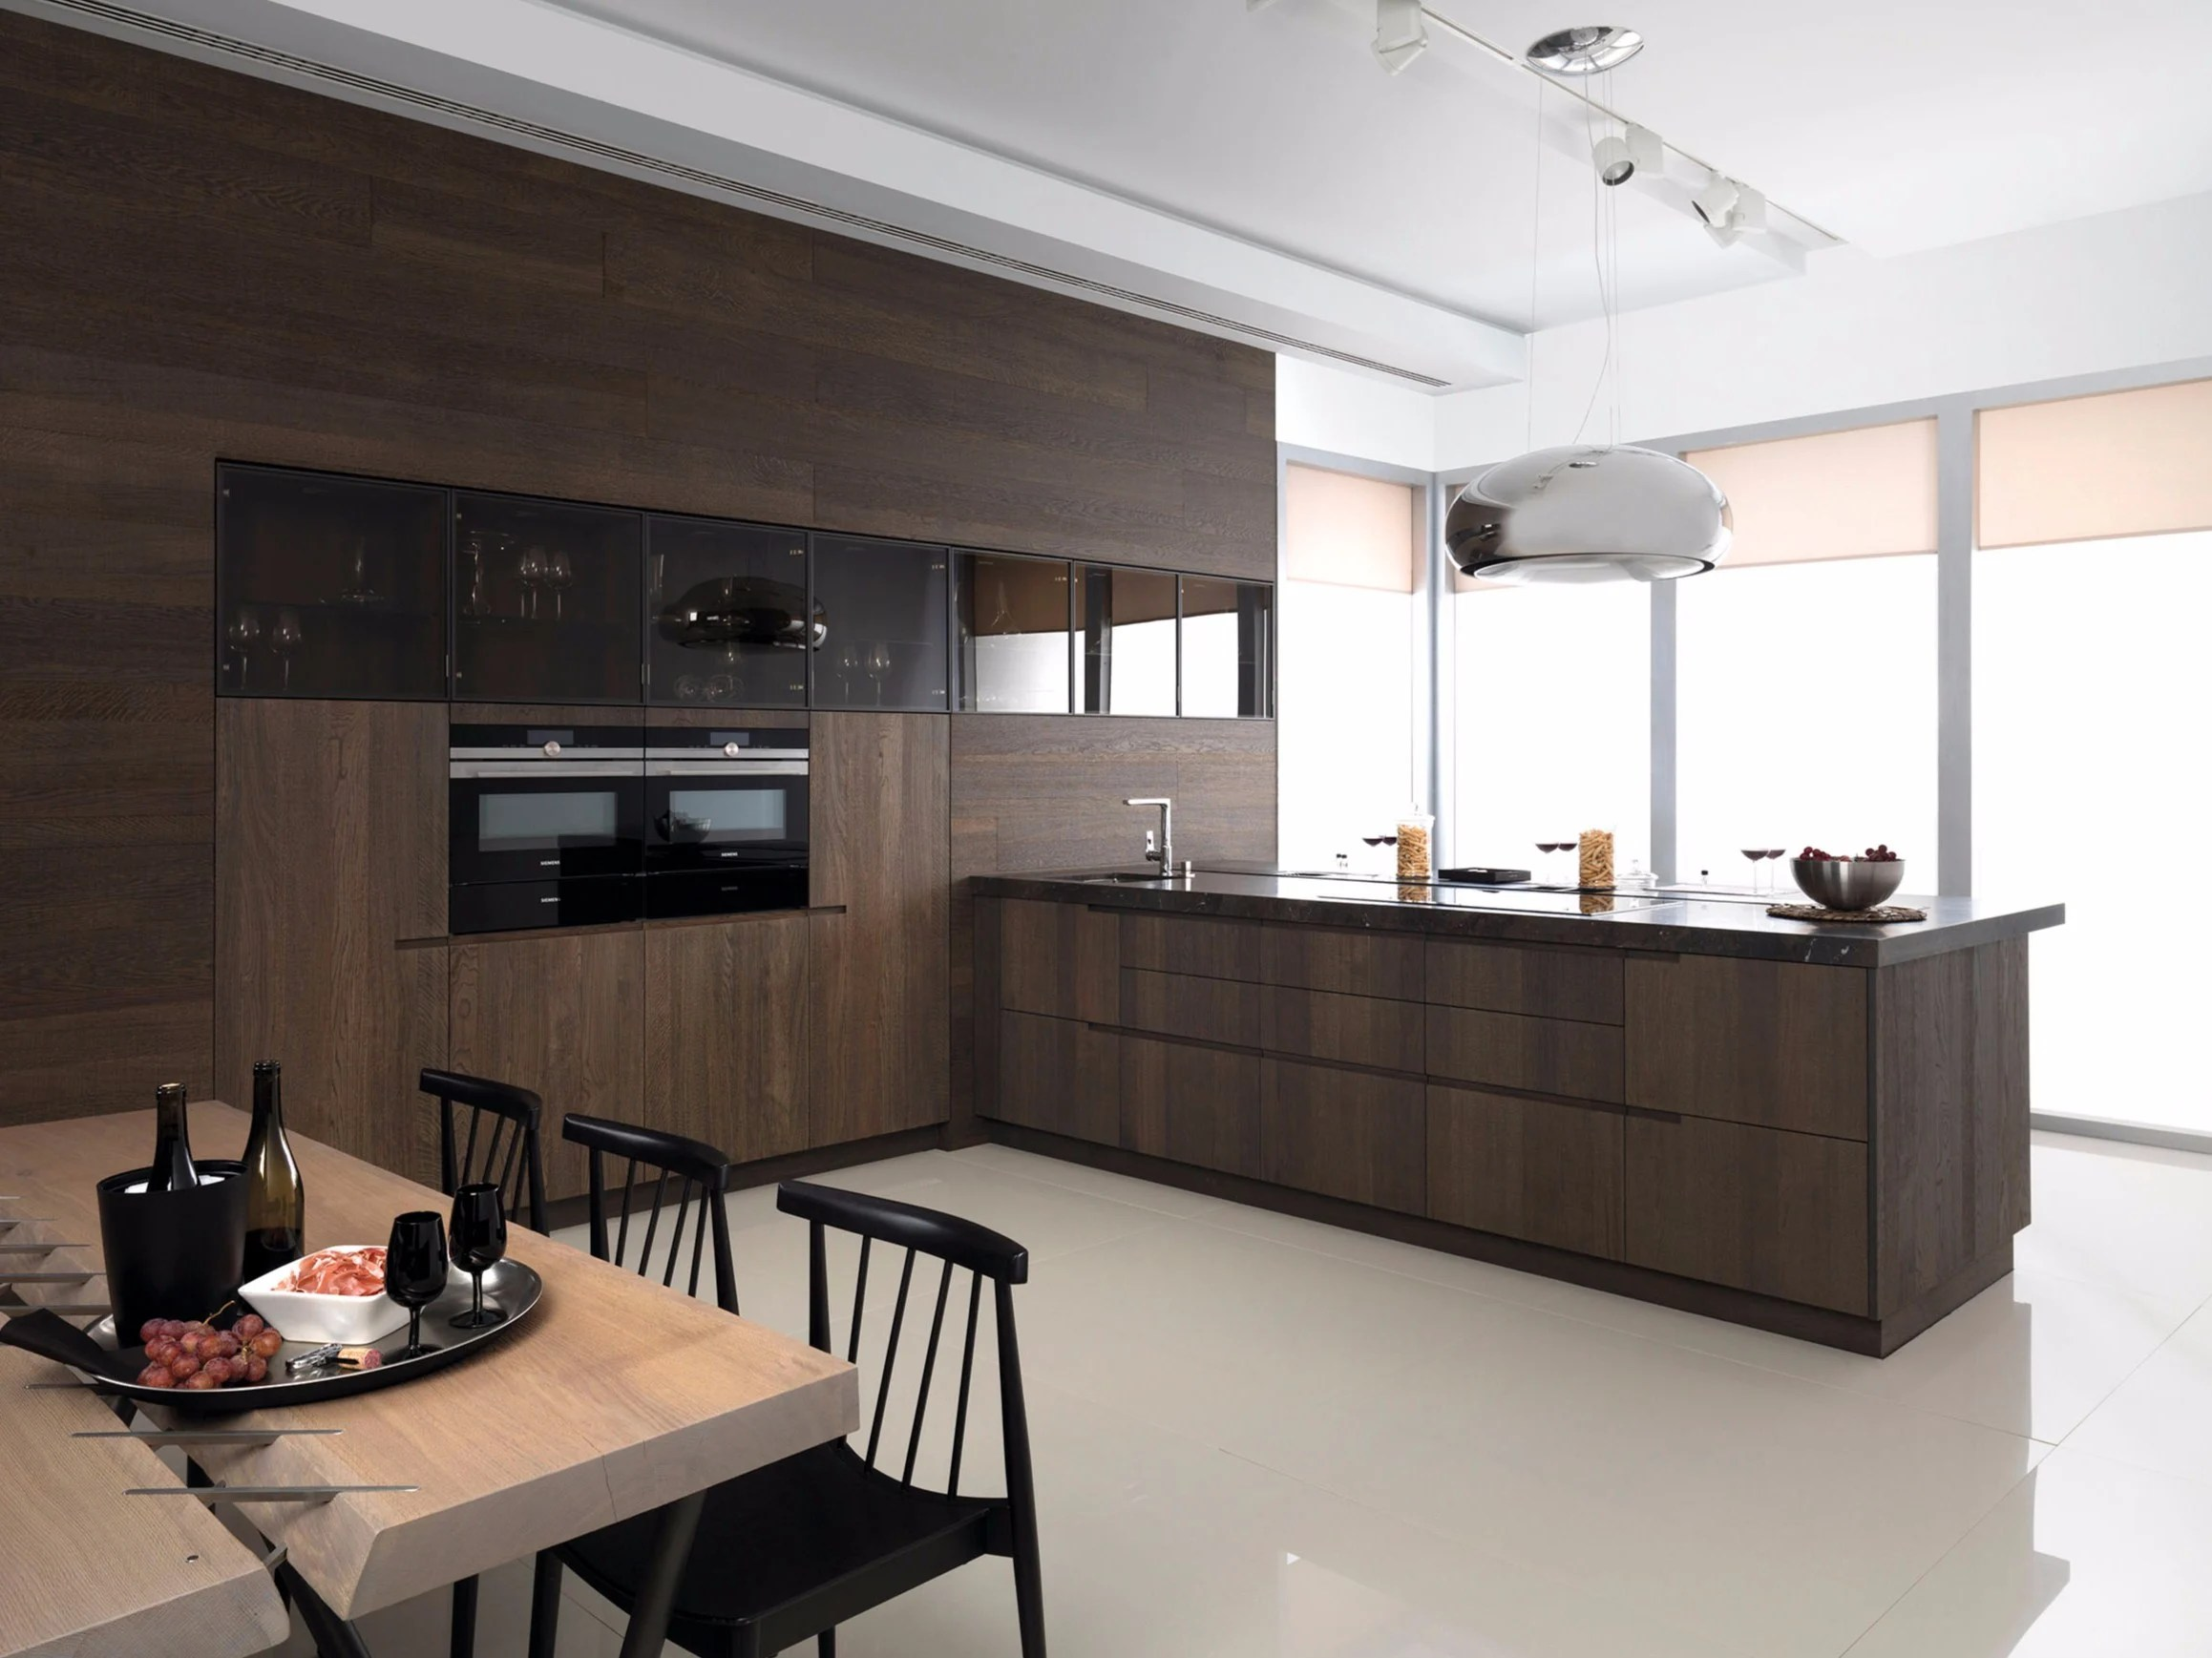 Gama Decor Cucina Componibile In Rovere Con Penisola E7 70 By Gamadecor